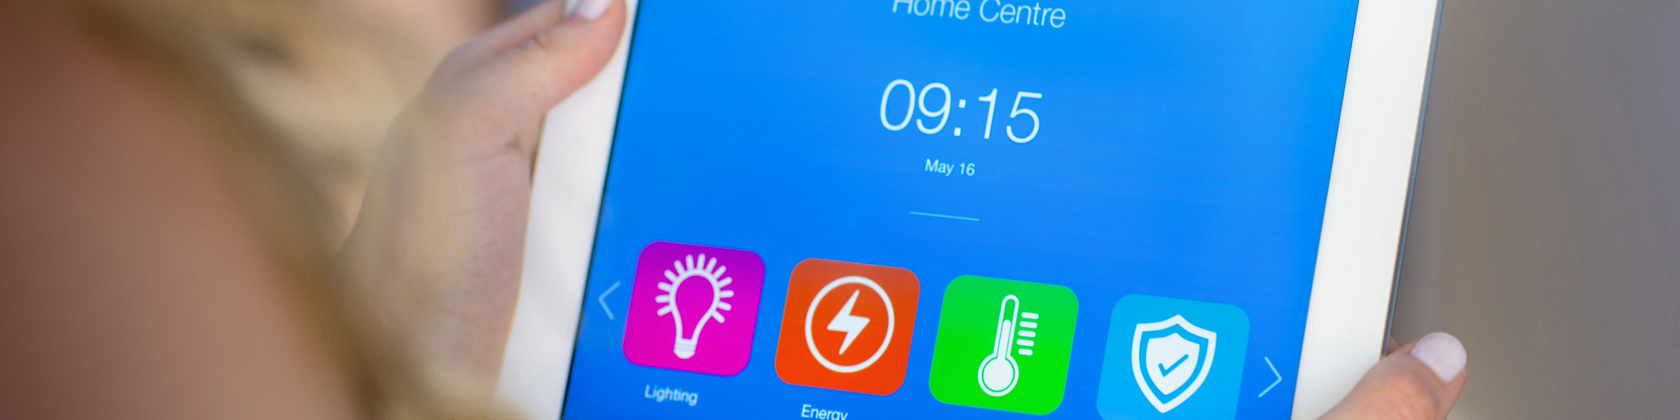 Digital home control apps